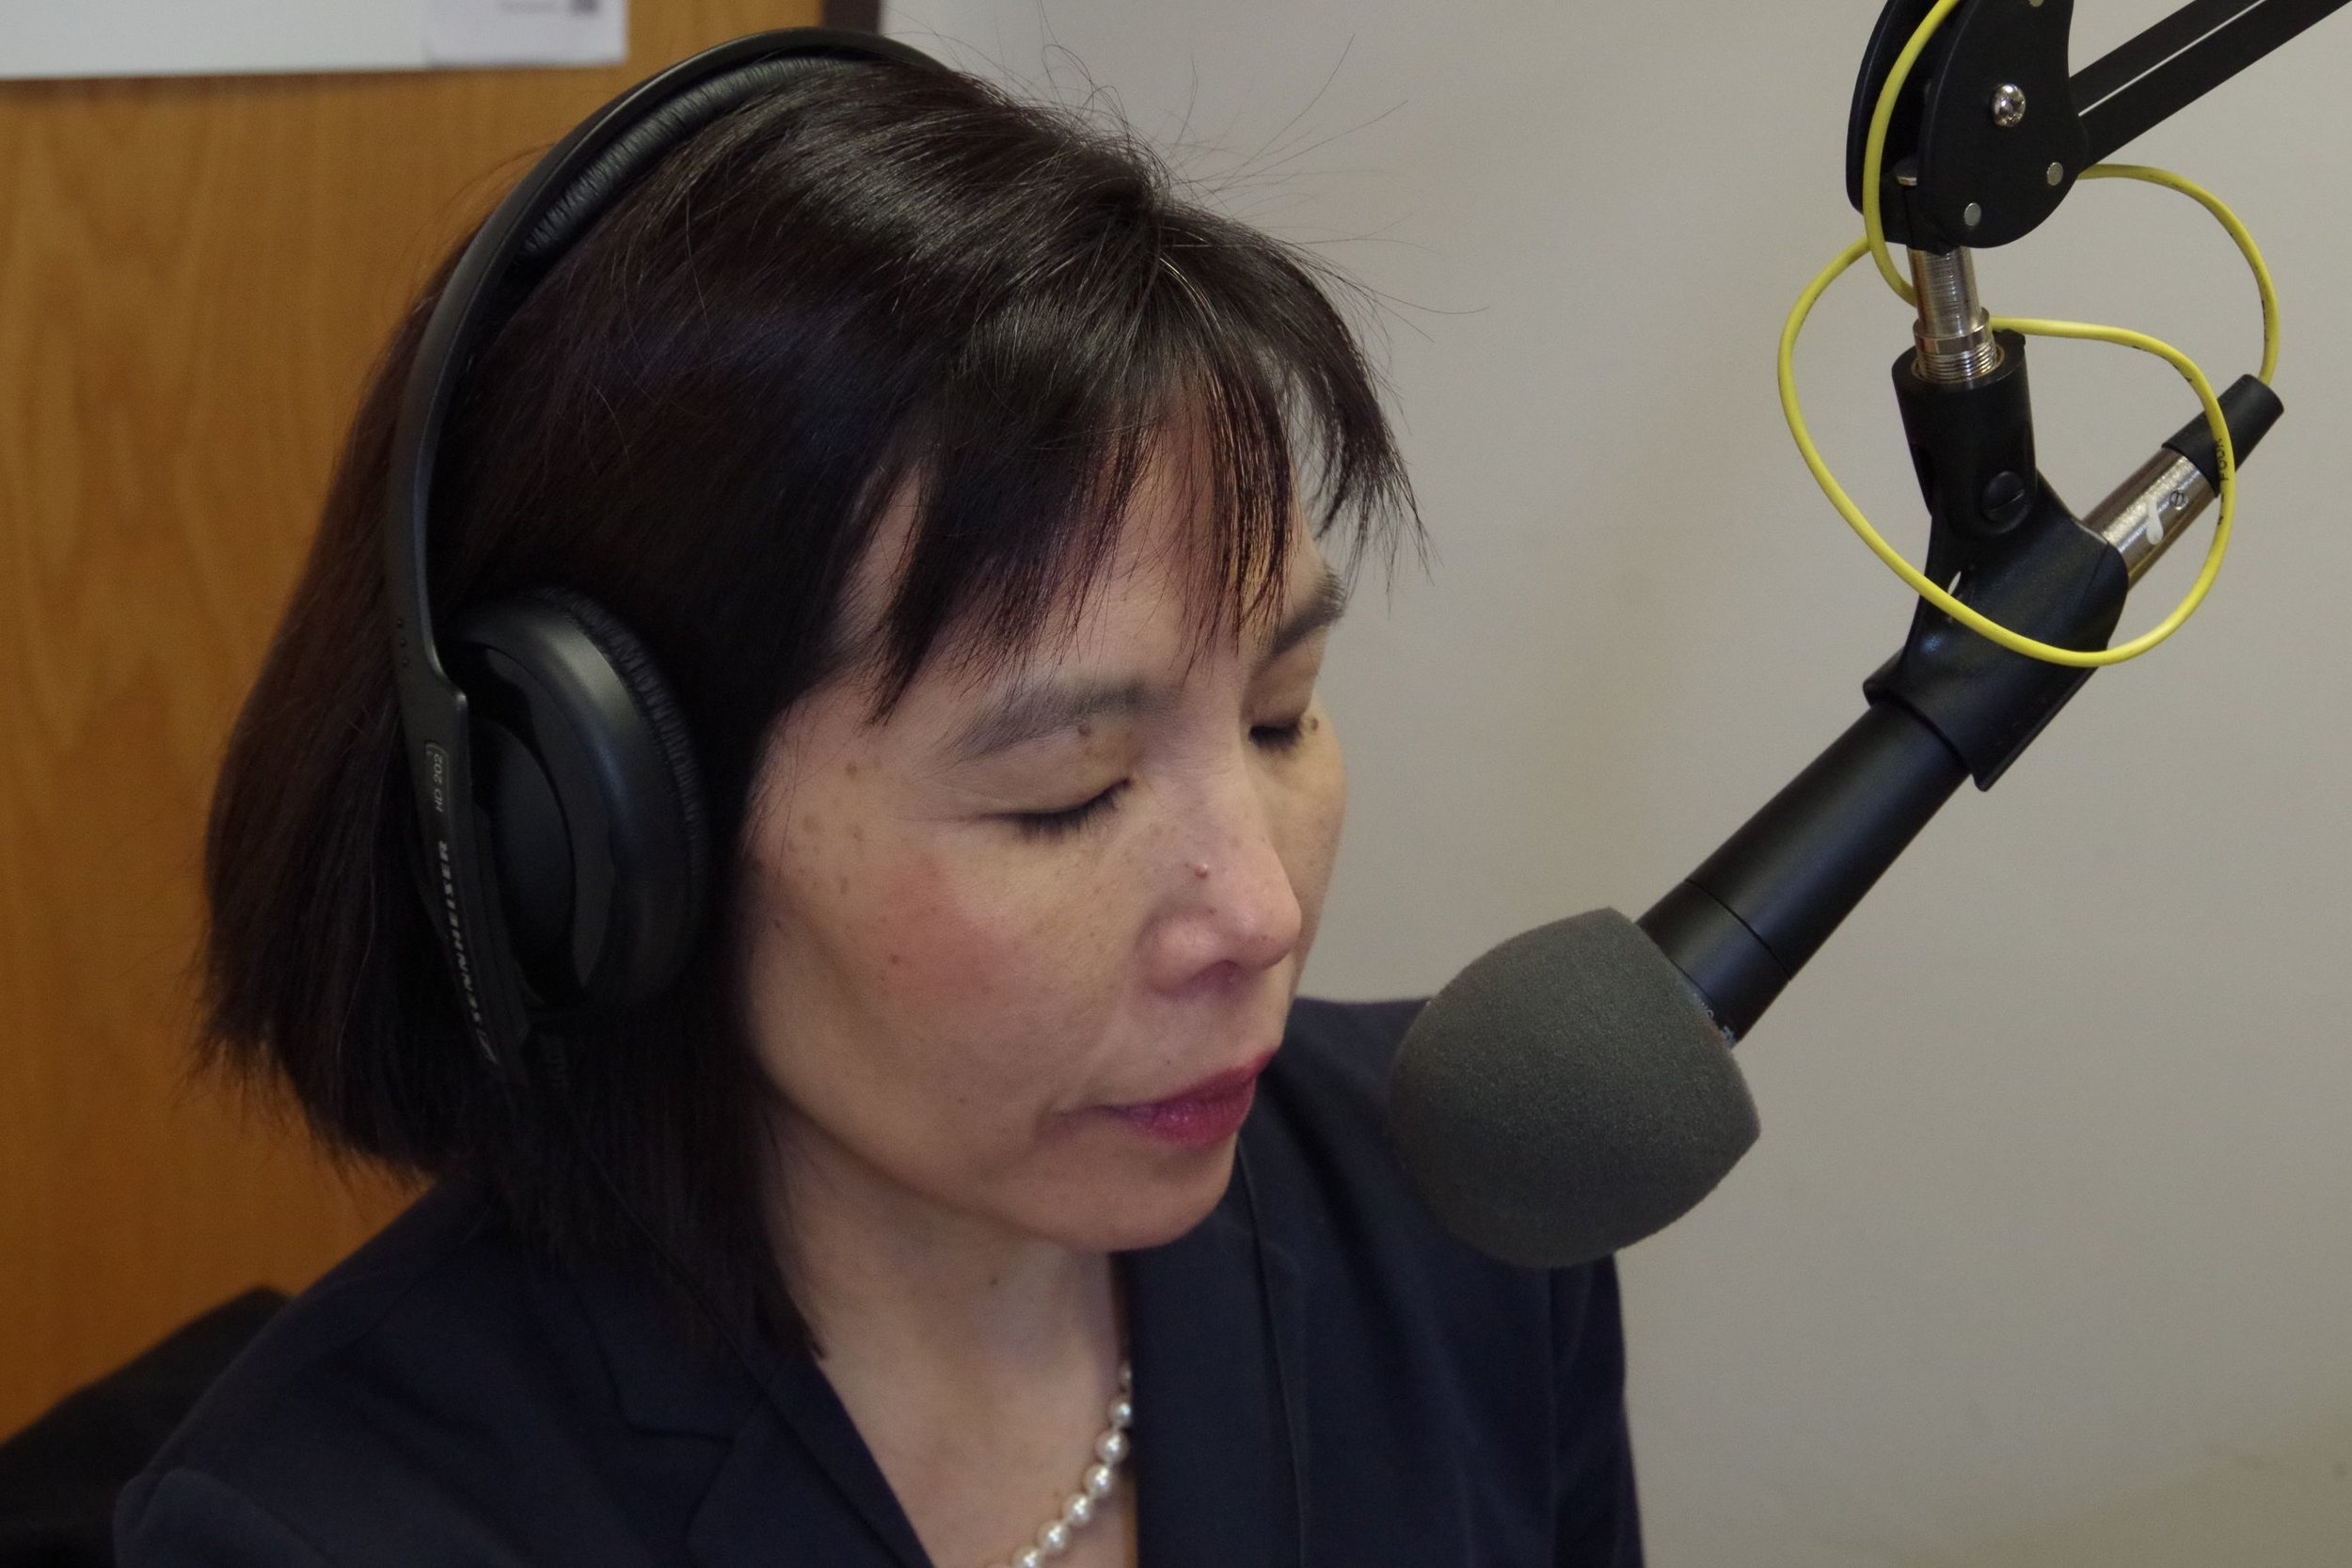 Host Betsy Kim speaks with New Haven activist Beatrice Codianni, about efforts to assist and help change the lives of some of the most vulnerable people in the New Haven community.